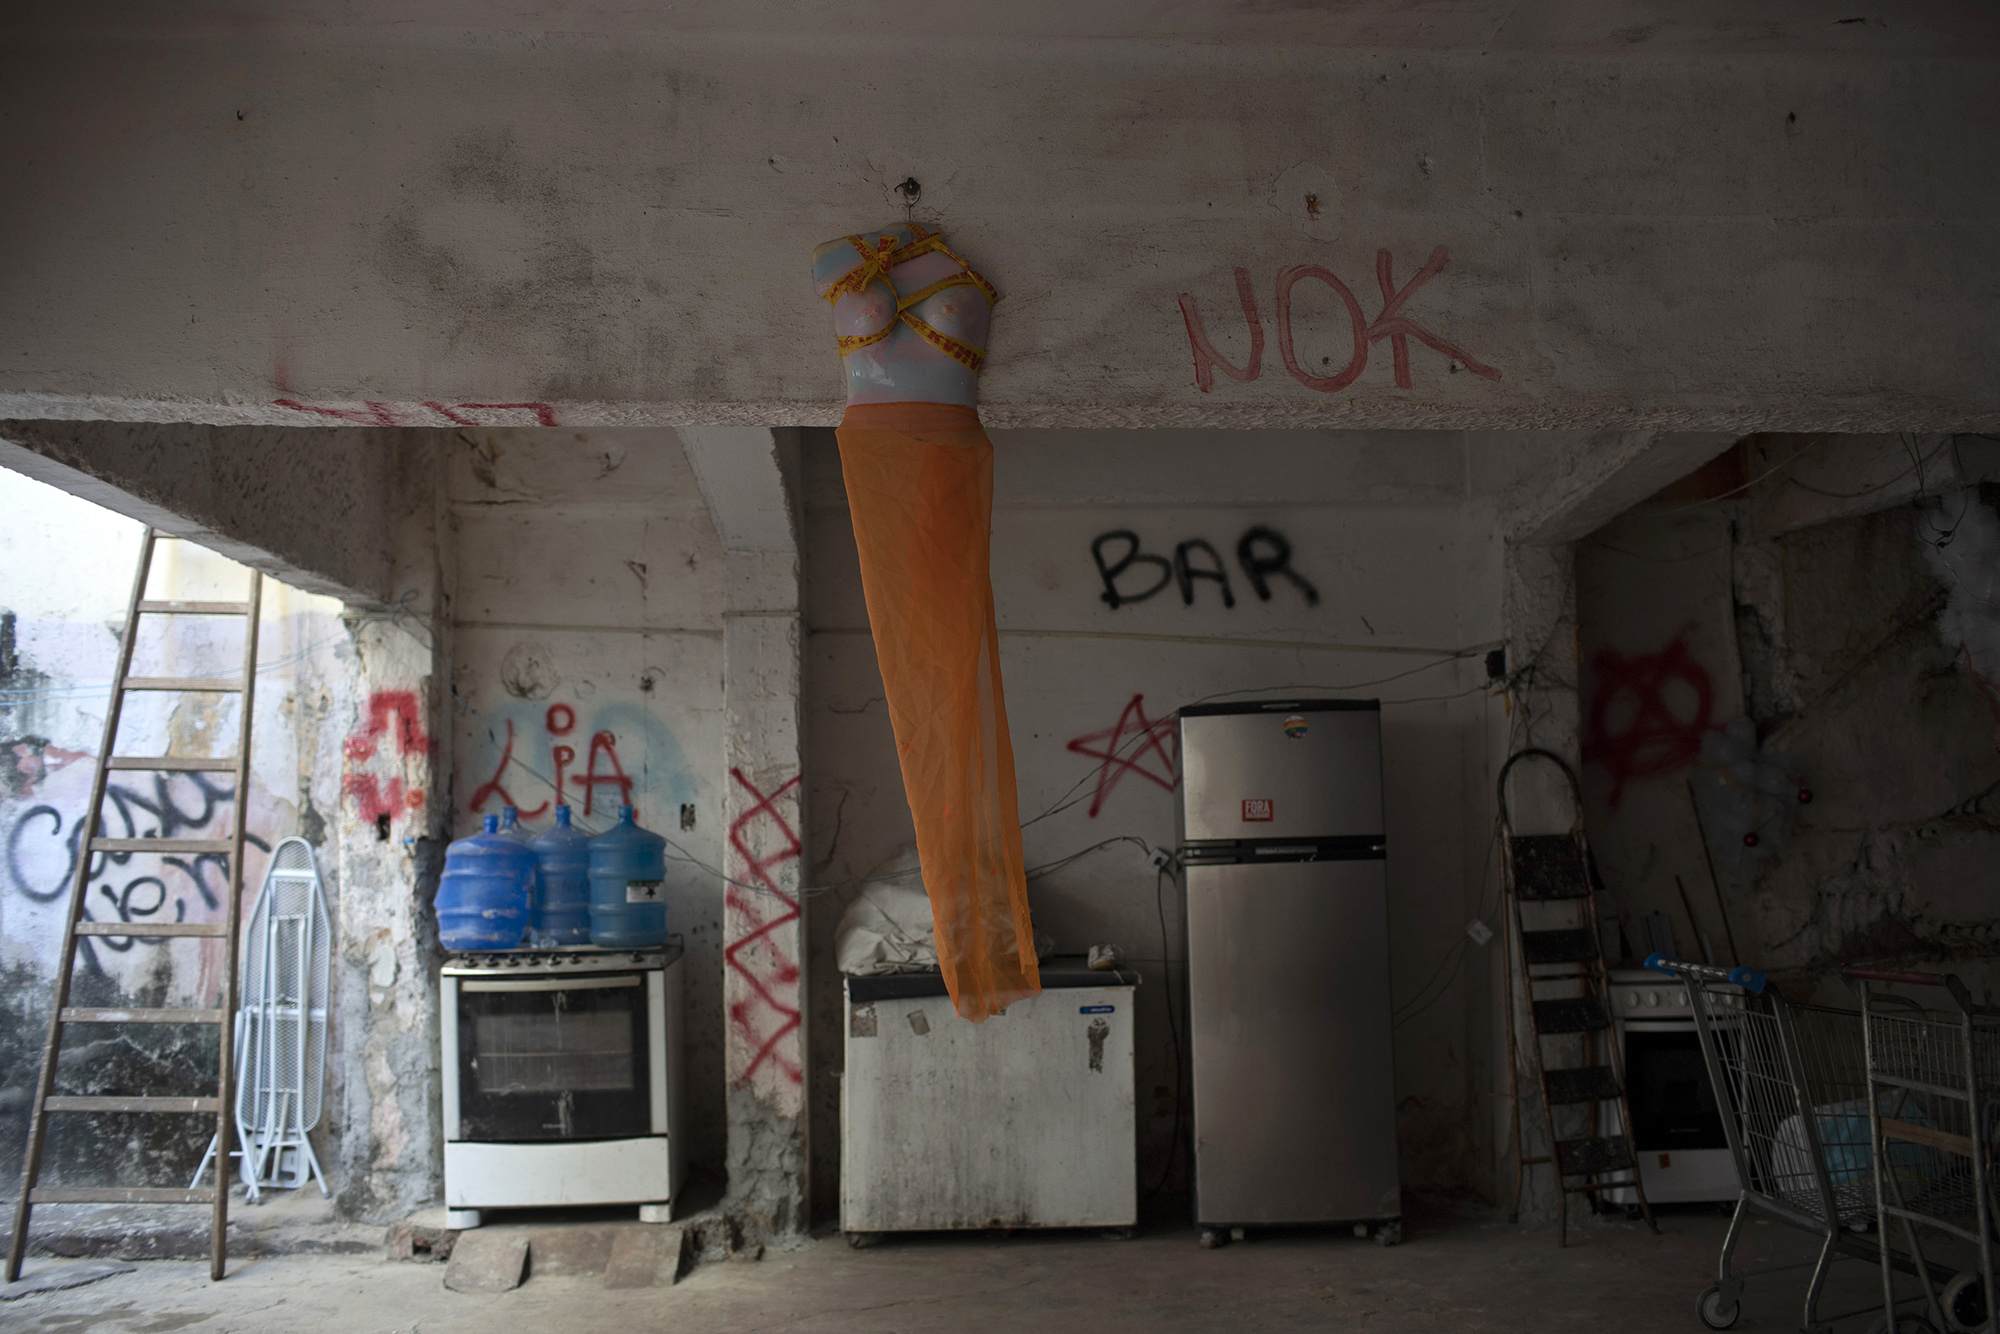 A half torso mannequin decorated with an orange veil hangs from a beam backdropped by donated items in the courtyard of the squat known as Casa Nem, occupied by members of the LGBTQ community who are in self-quarantine as a protective measure against the new coronavirus, in Rio de Janeiro, Brazil, Wednesday, July 8, 2020. They receive food donations as well and are barred from leaving unless facing medical emergency or other exceptional circumstances.